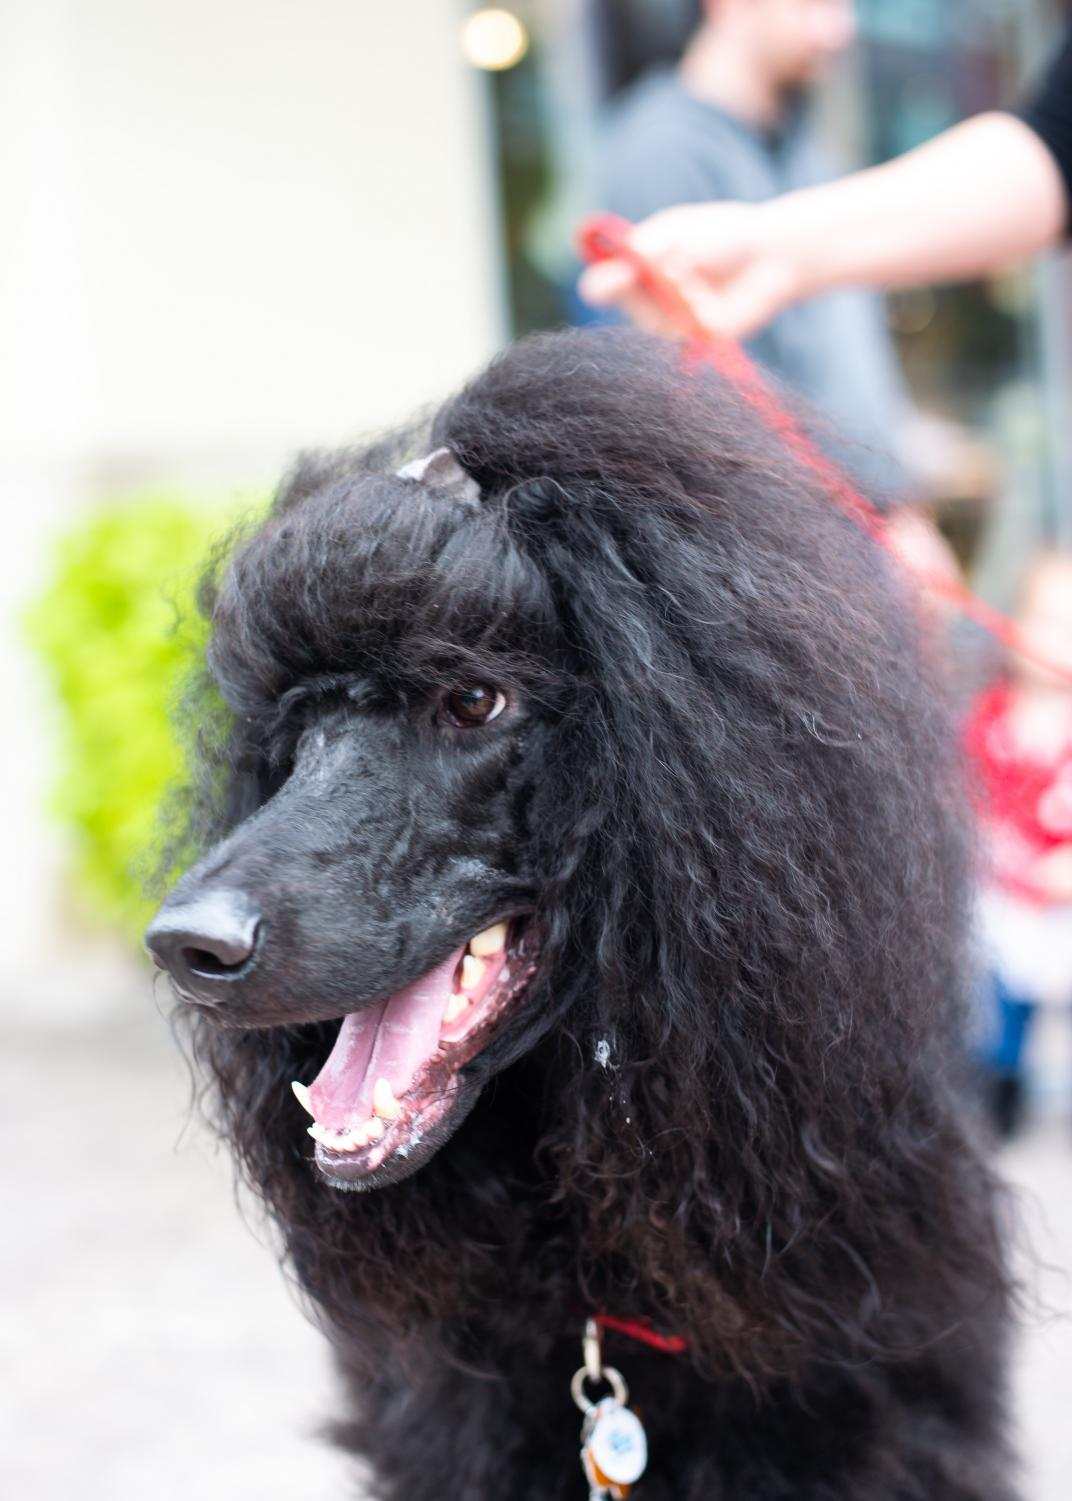 Dexter%2C+a+three-year-old+standard+poodle%2C+displays+his+locks.+%22He+is+part+of+the+Poodle+Parade+at+Pet-Tober-Fest%2C%22+his+owner+said.